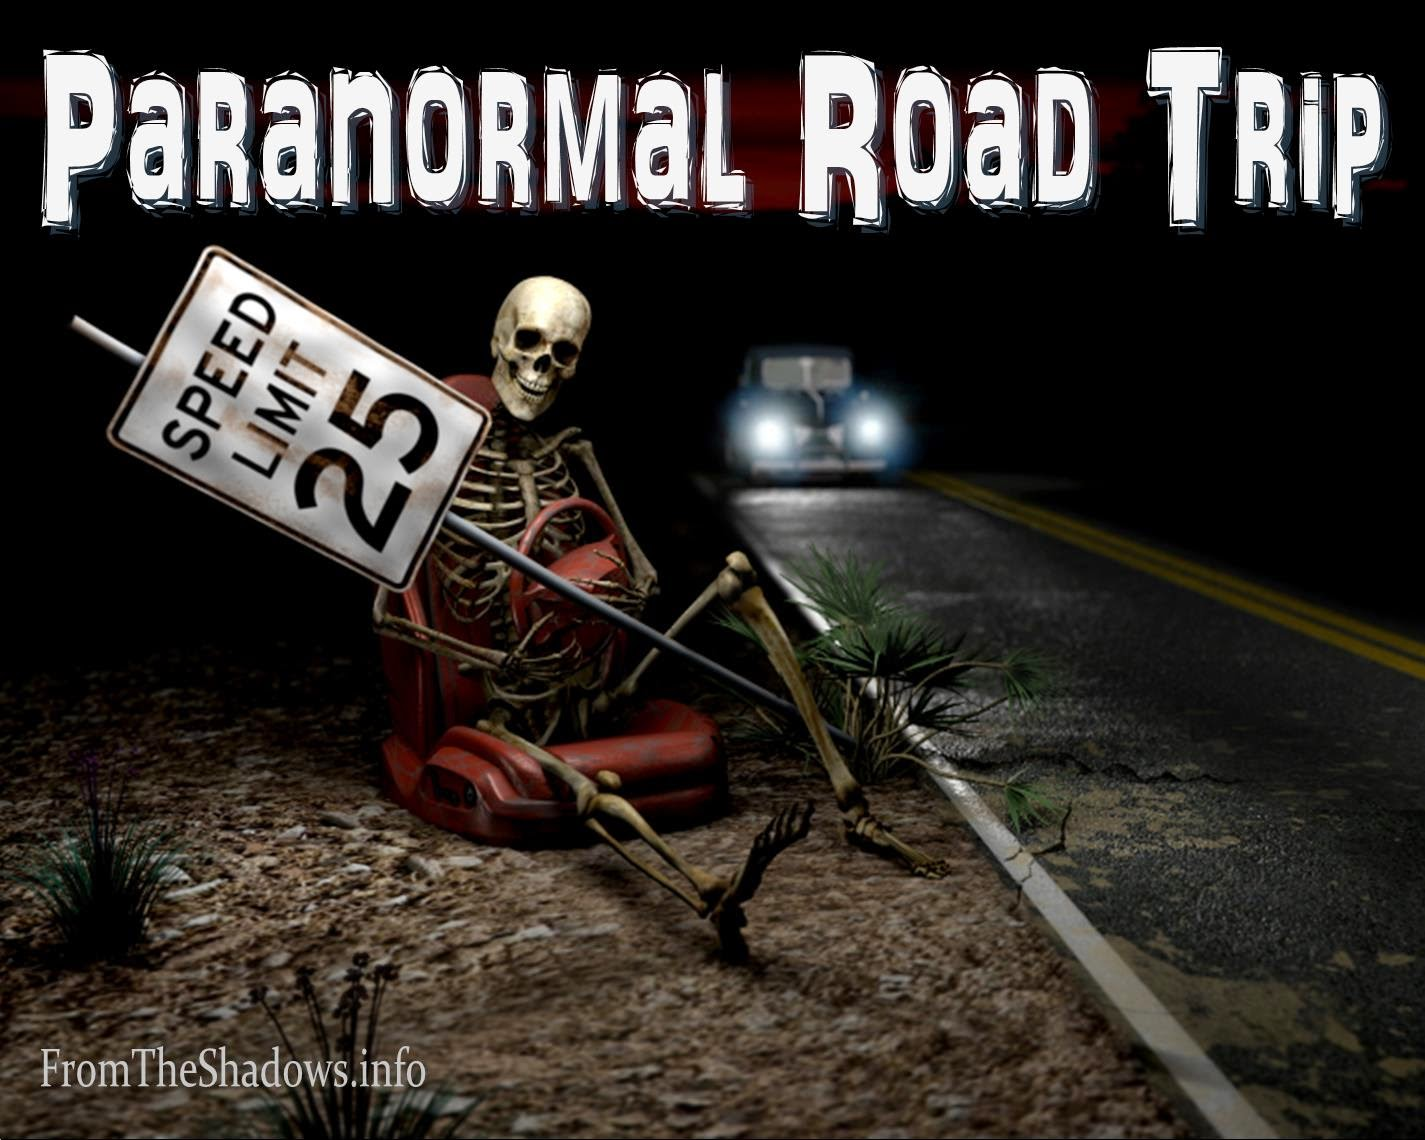 Paranormal Road Trip: Destination Savannah with Emily Cyr author of The Lightning Prophecy